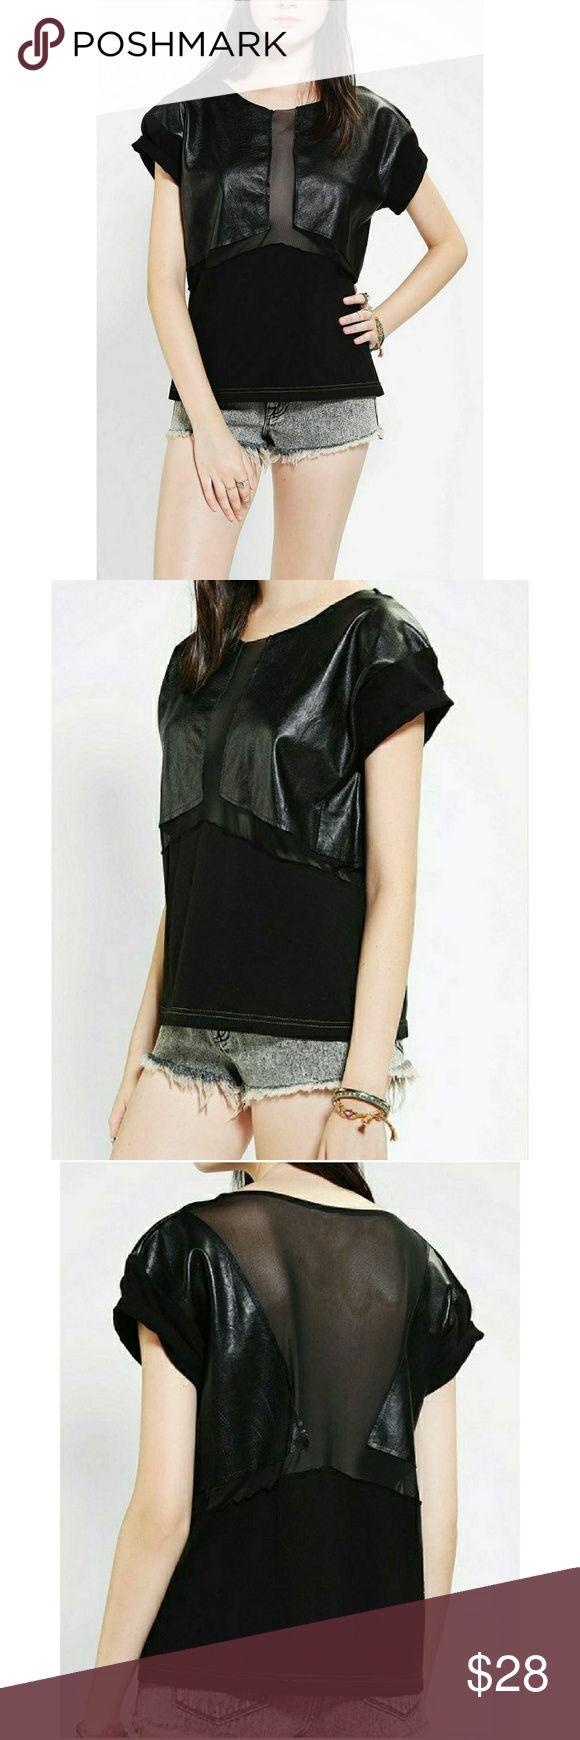 """Urban Outfitters Urban Renewal Tee Urban Outfitters Urban Renewal Chiffon and Faux Black Leather Tee   Sheer Mesh Panel Black   New without tags   Size Medium   Made in the USA From Vintage Fabrics  Approx?22"""" armpit to armpit 24"""" total length top to bottom Urban Outfitters Tops"""